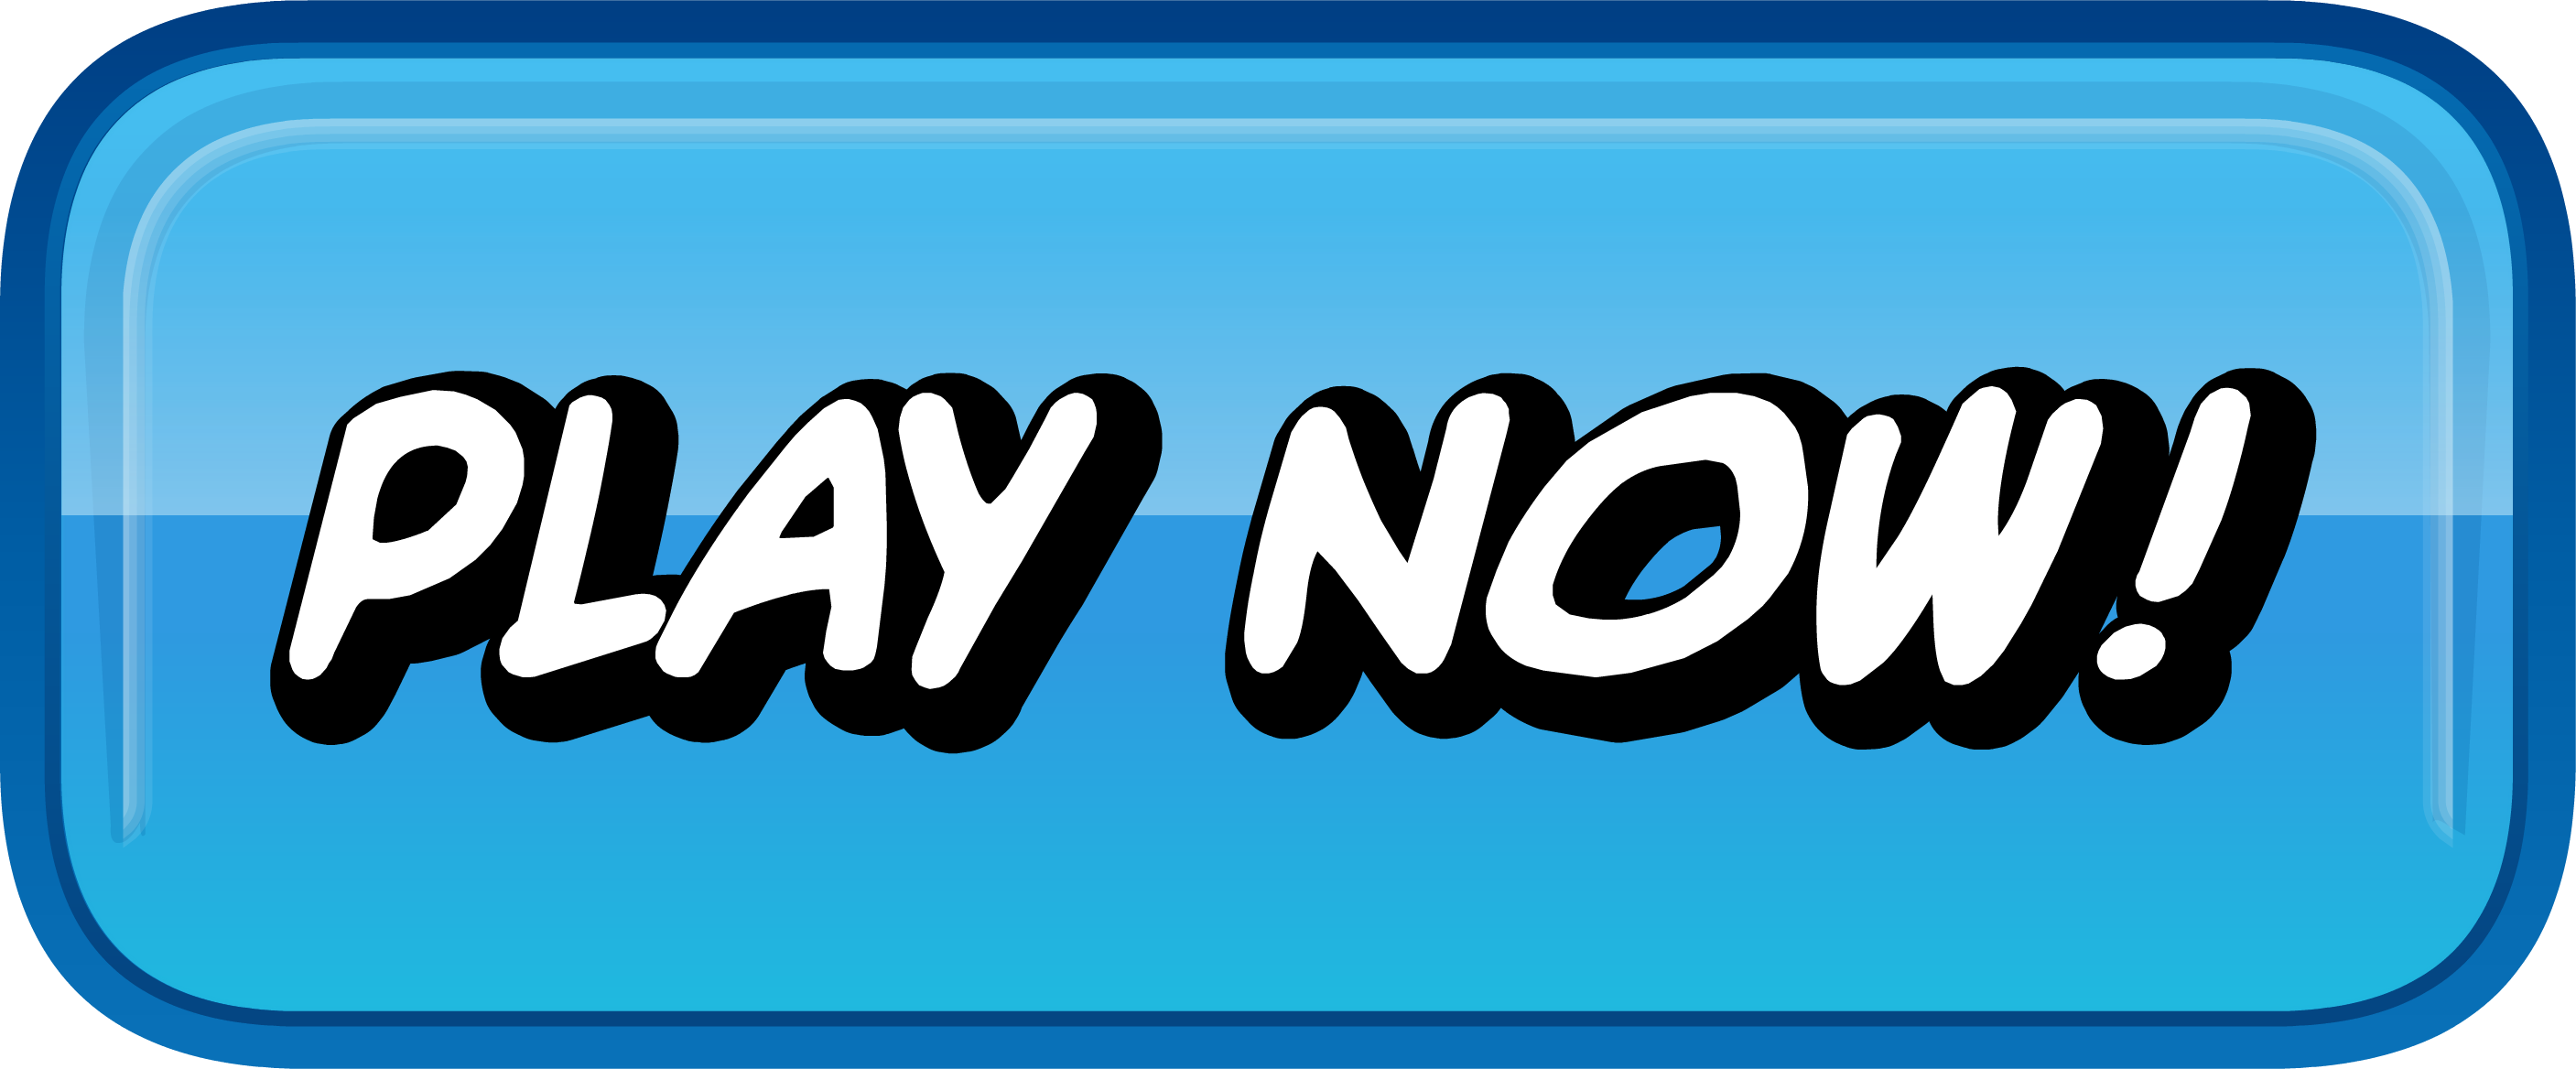 Play Now Button PNG - 25848